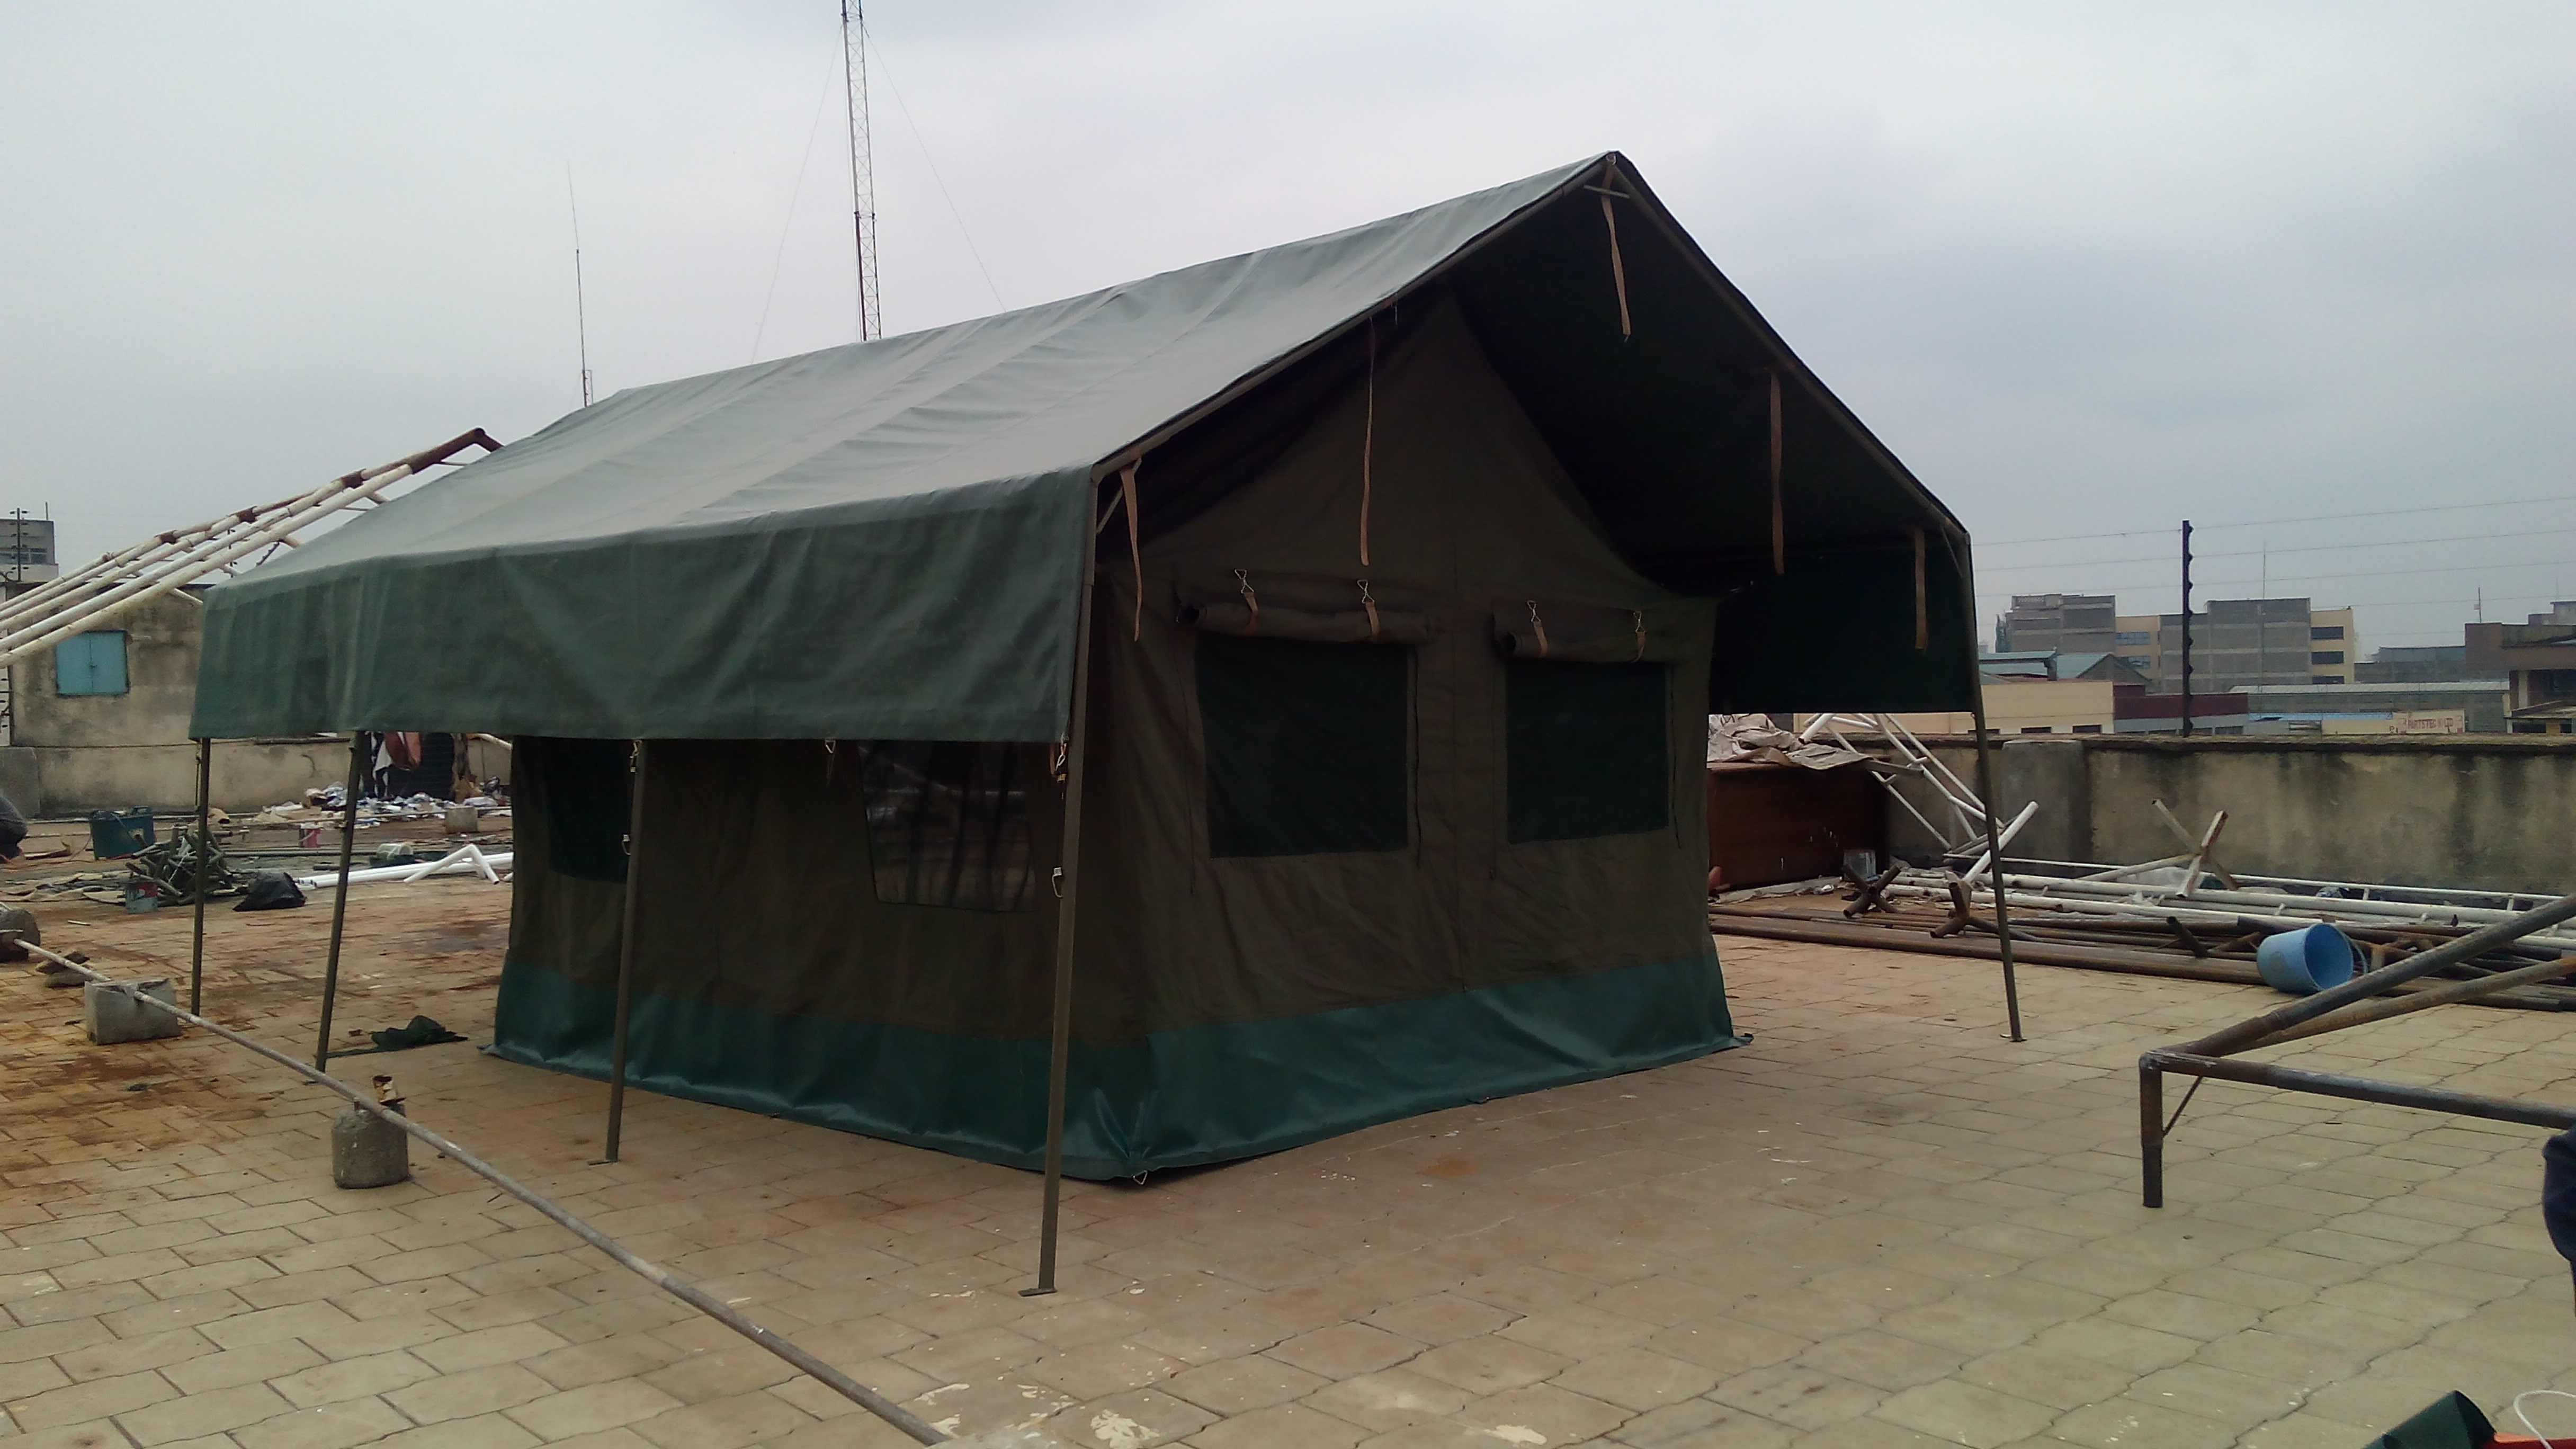 Camping Tents Amp Covers For Sale In Kenya Shade Systems